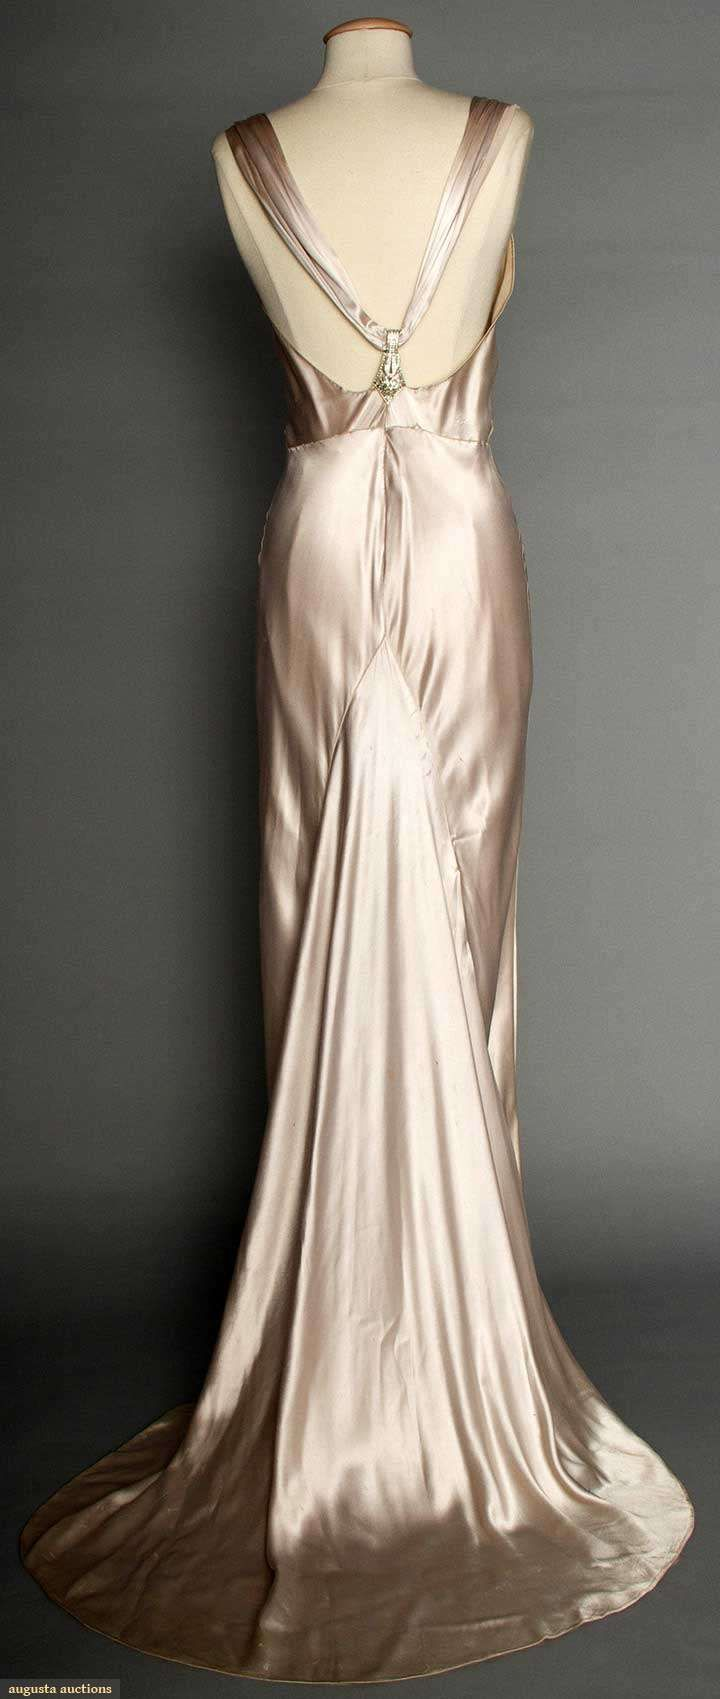 Silver satin evening gown s pale lavendersilver silk charmeuse